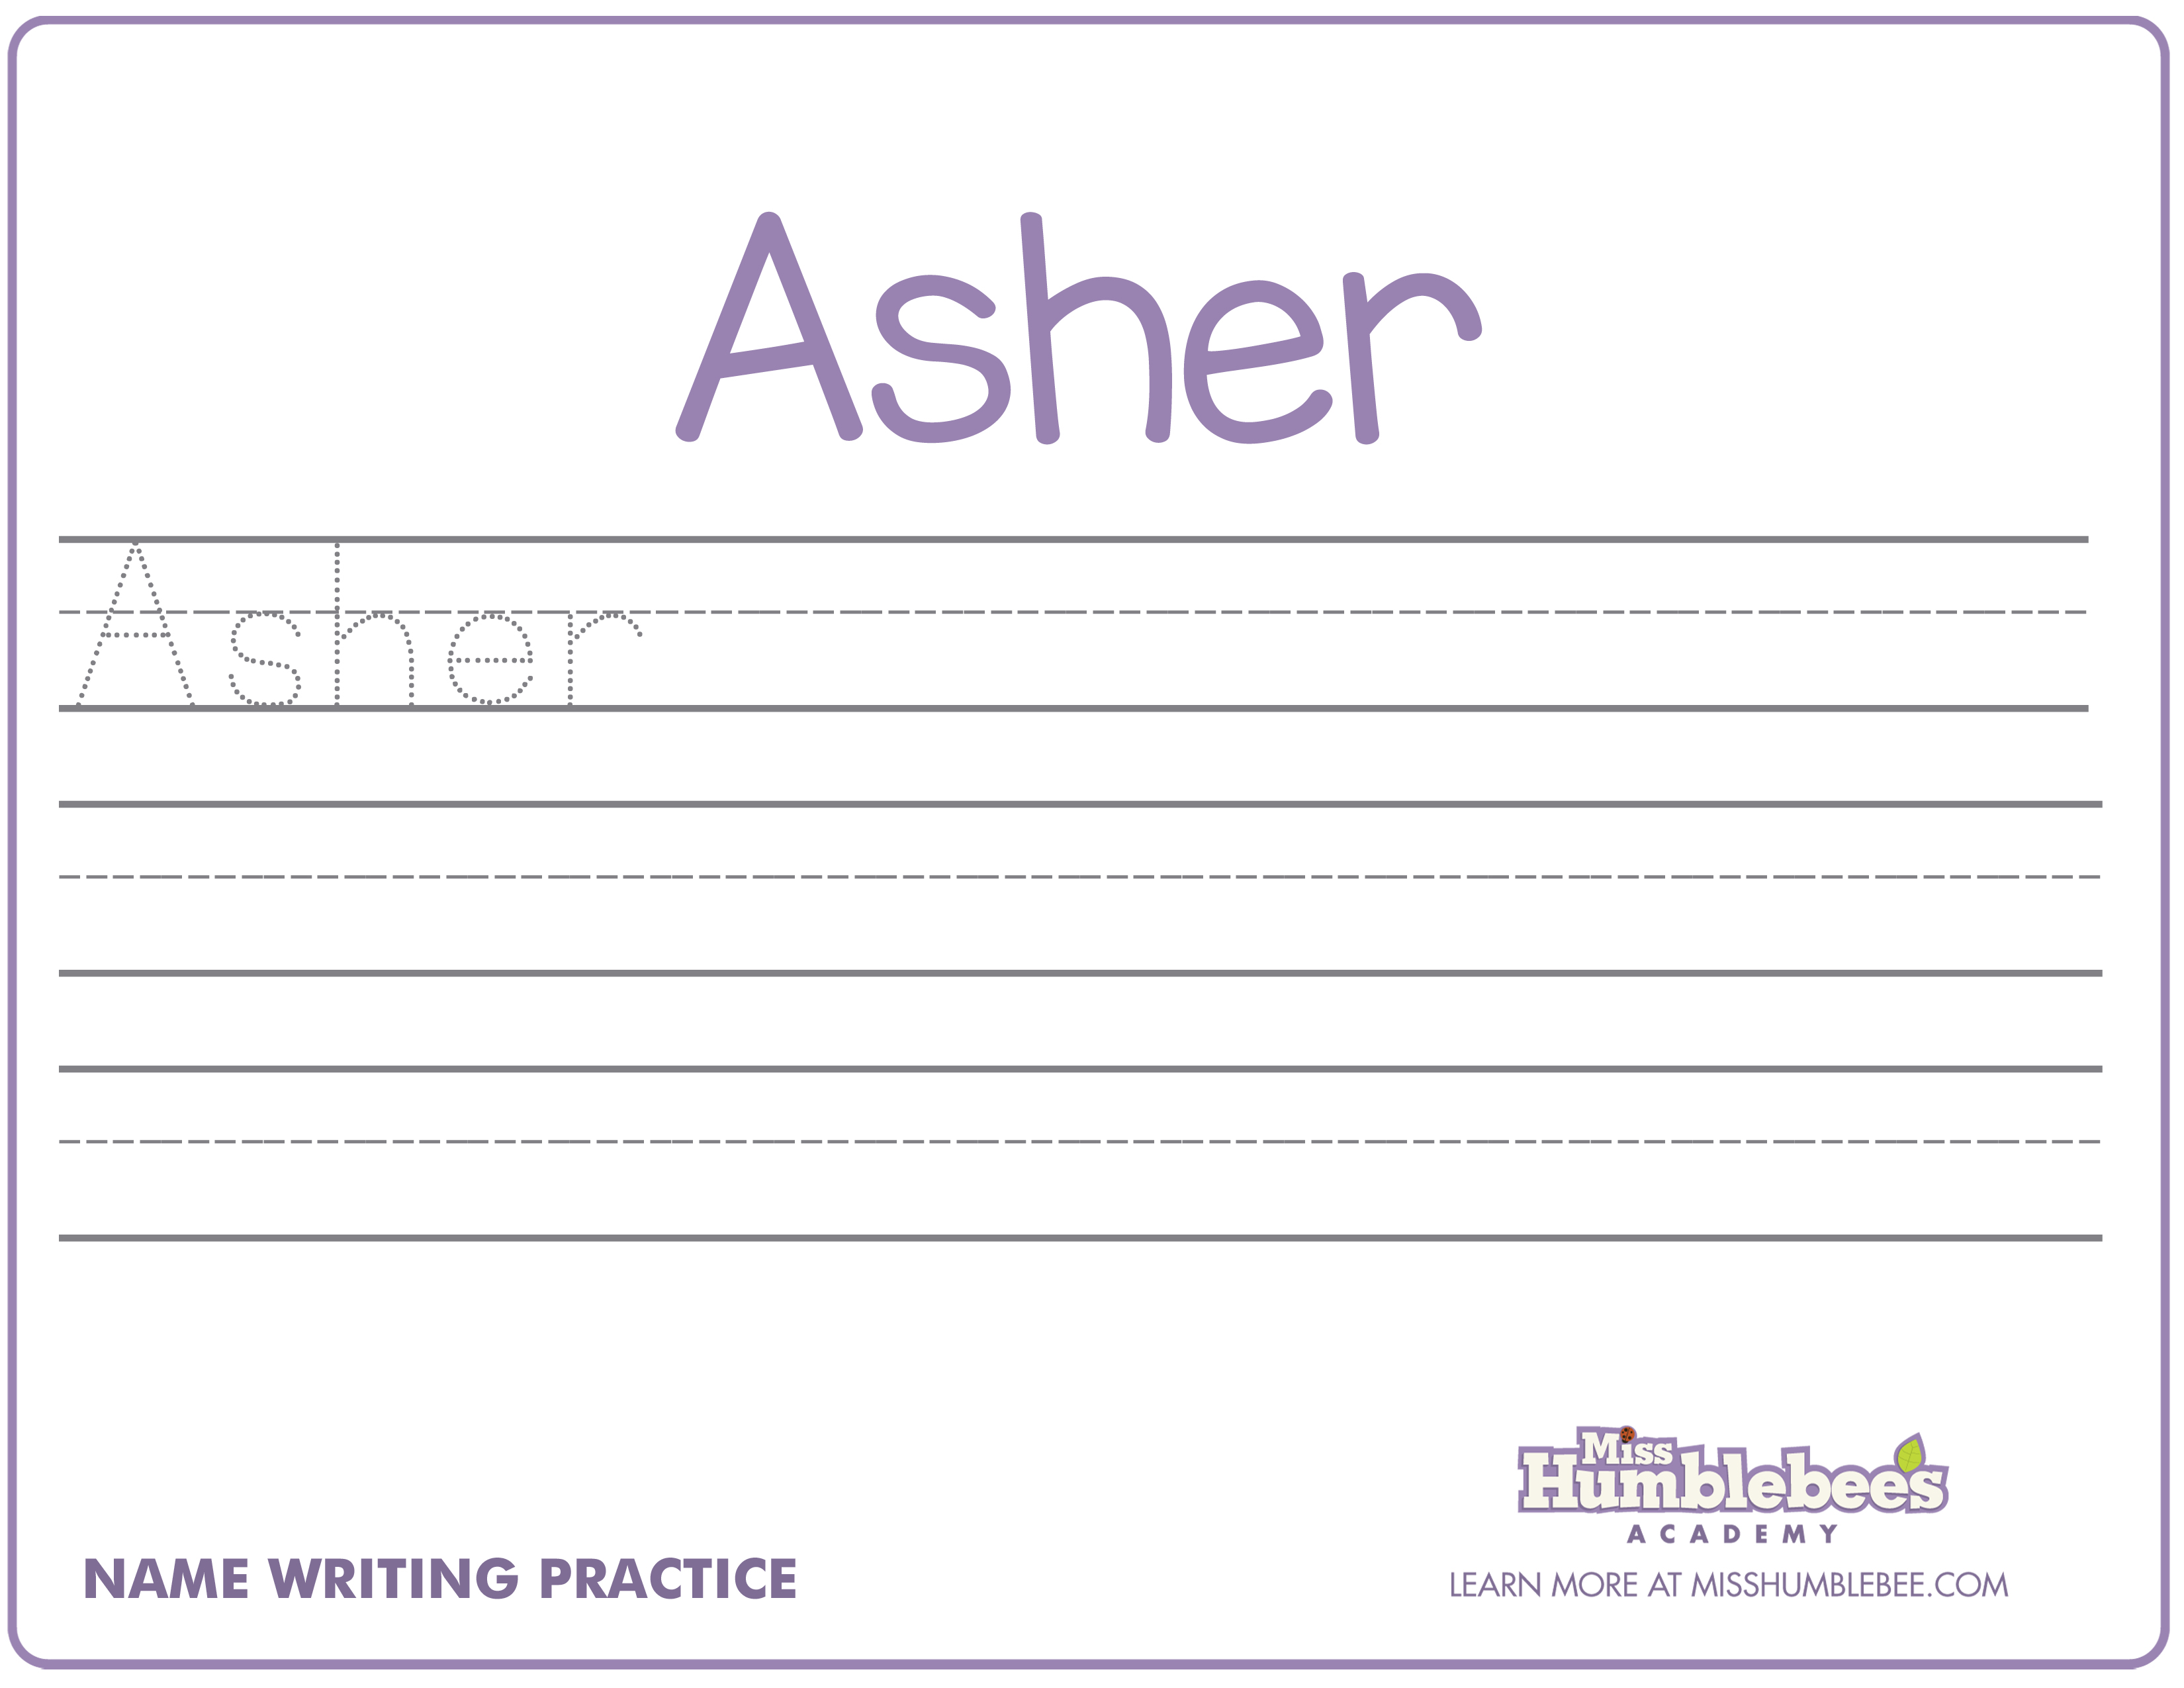 Printables Handwriting Worksheets Name preschool writing name worksheets free dotted tracing articles